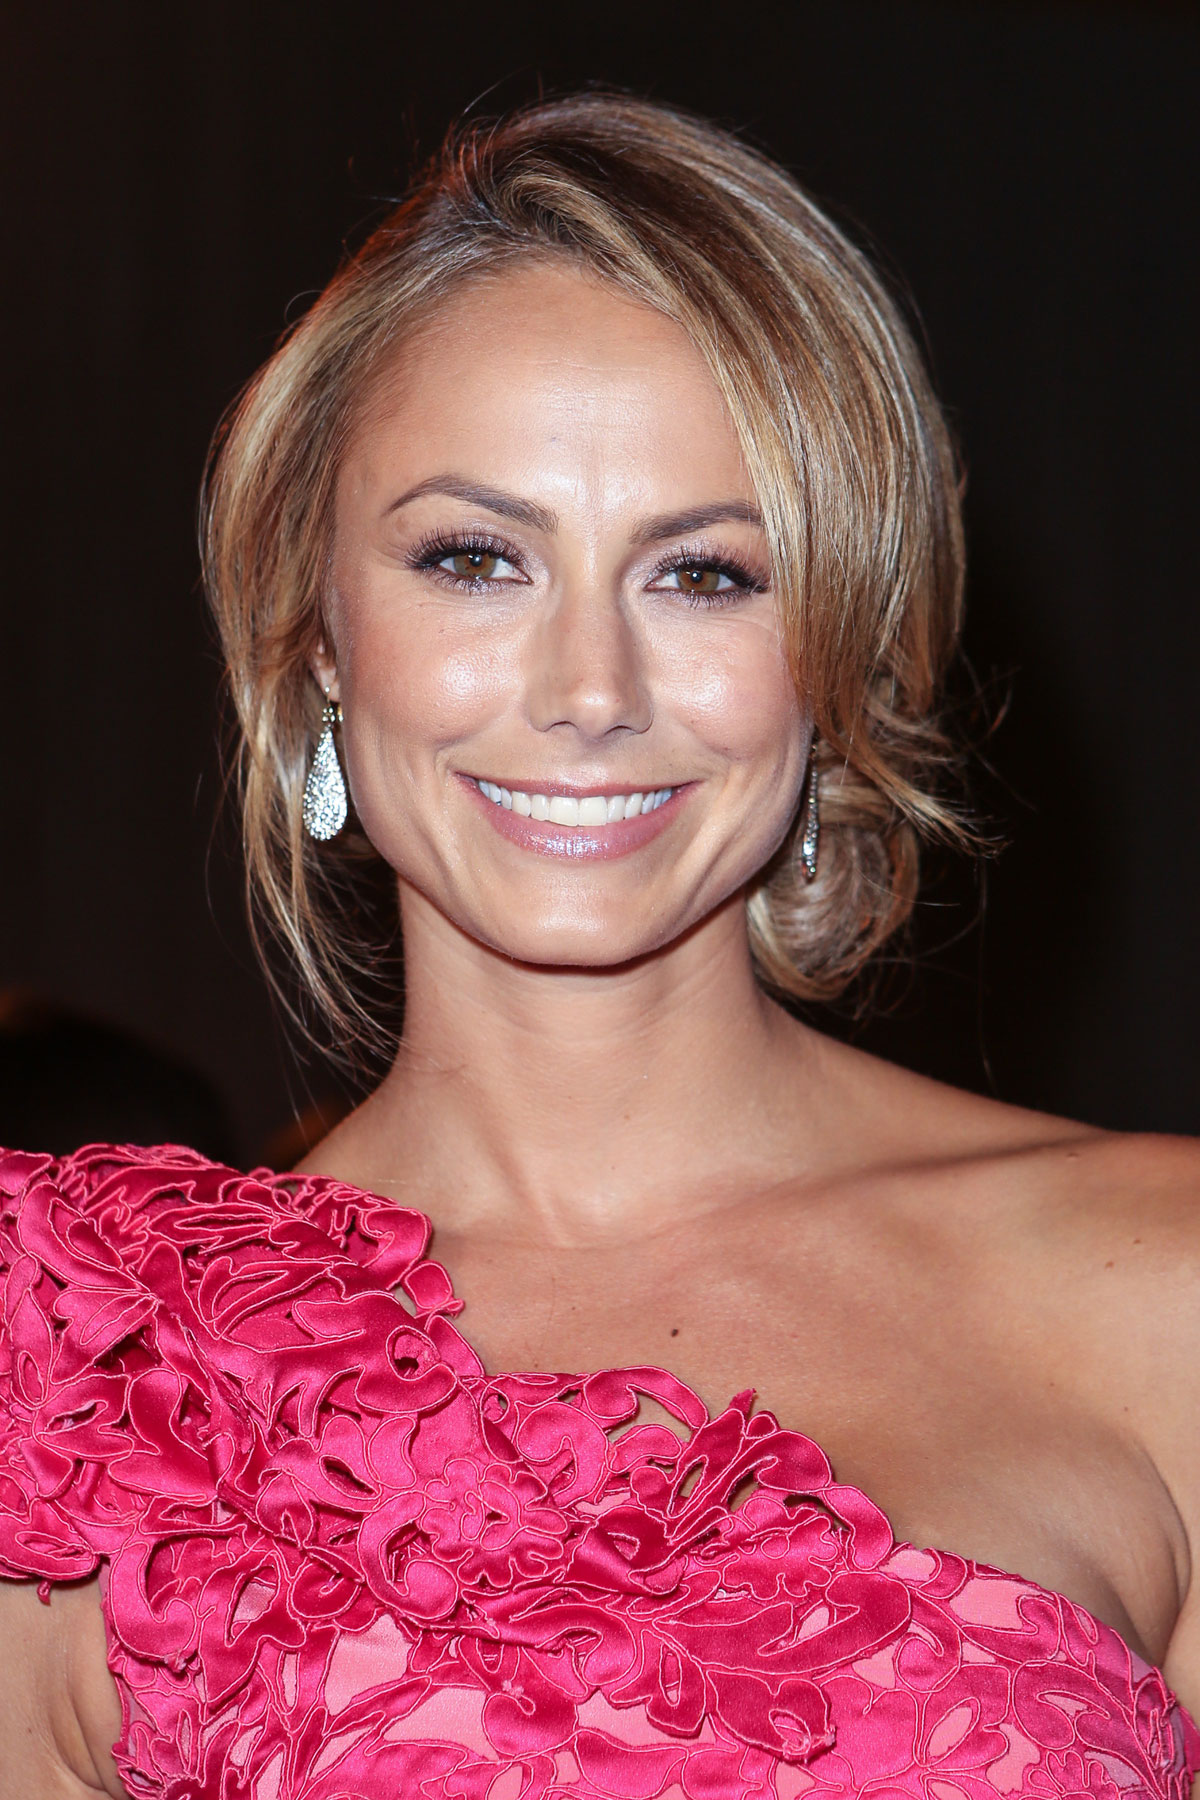 STACY KEIBLER at Marchesa Fashion Show in New York